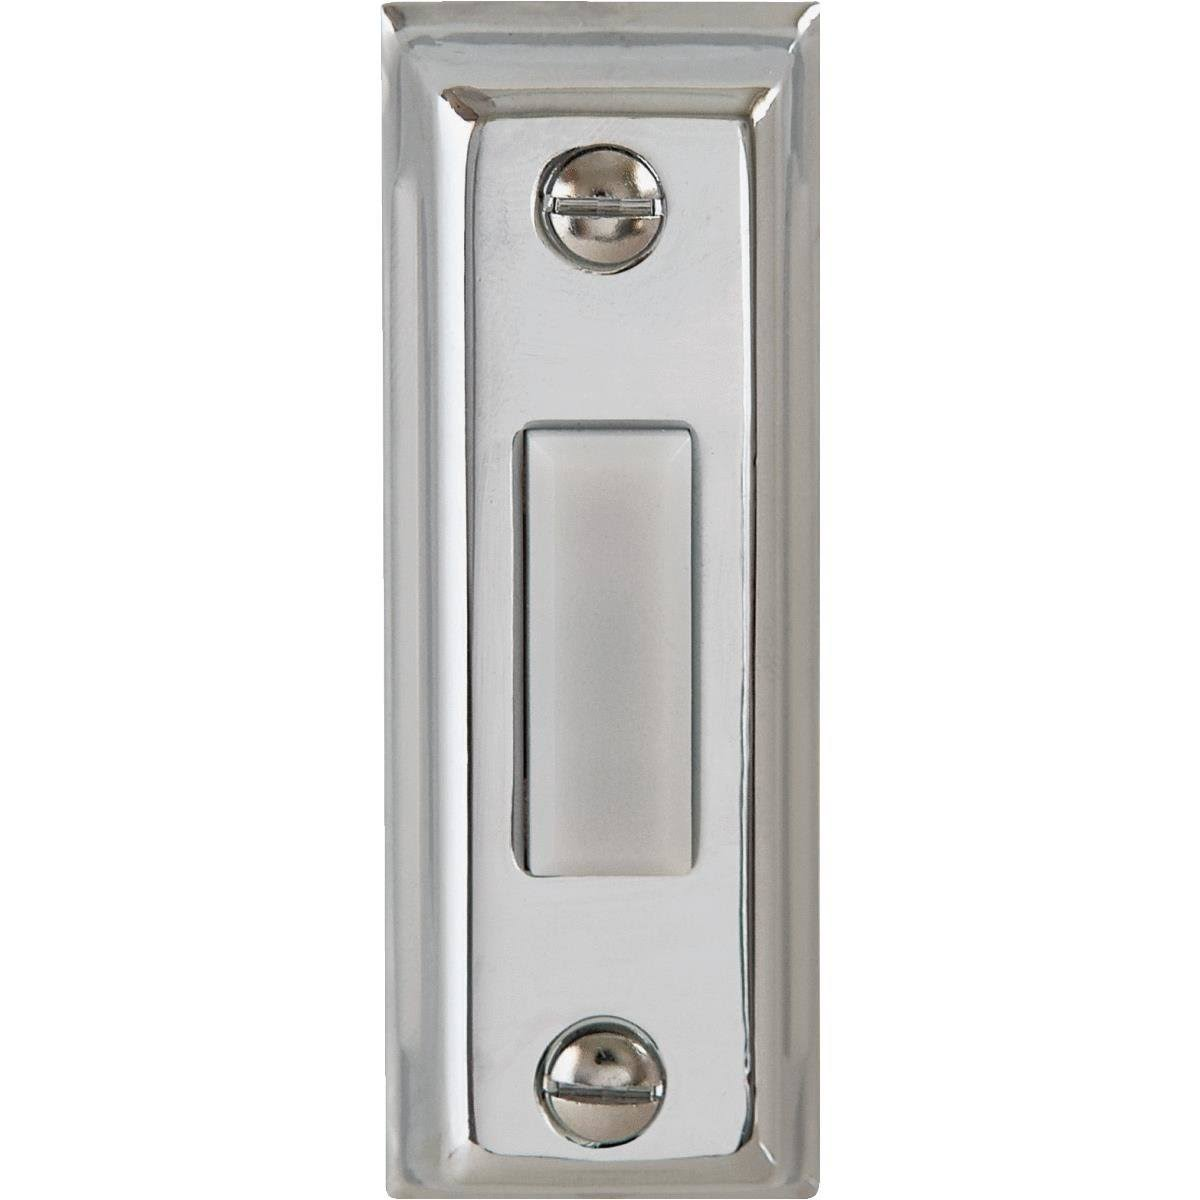 IQ America Rectangular Design Lighted Doorbell Push-Button